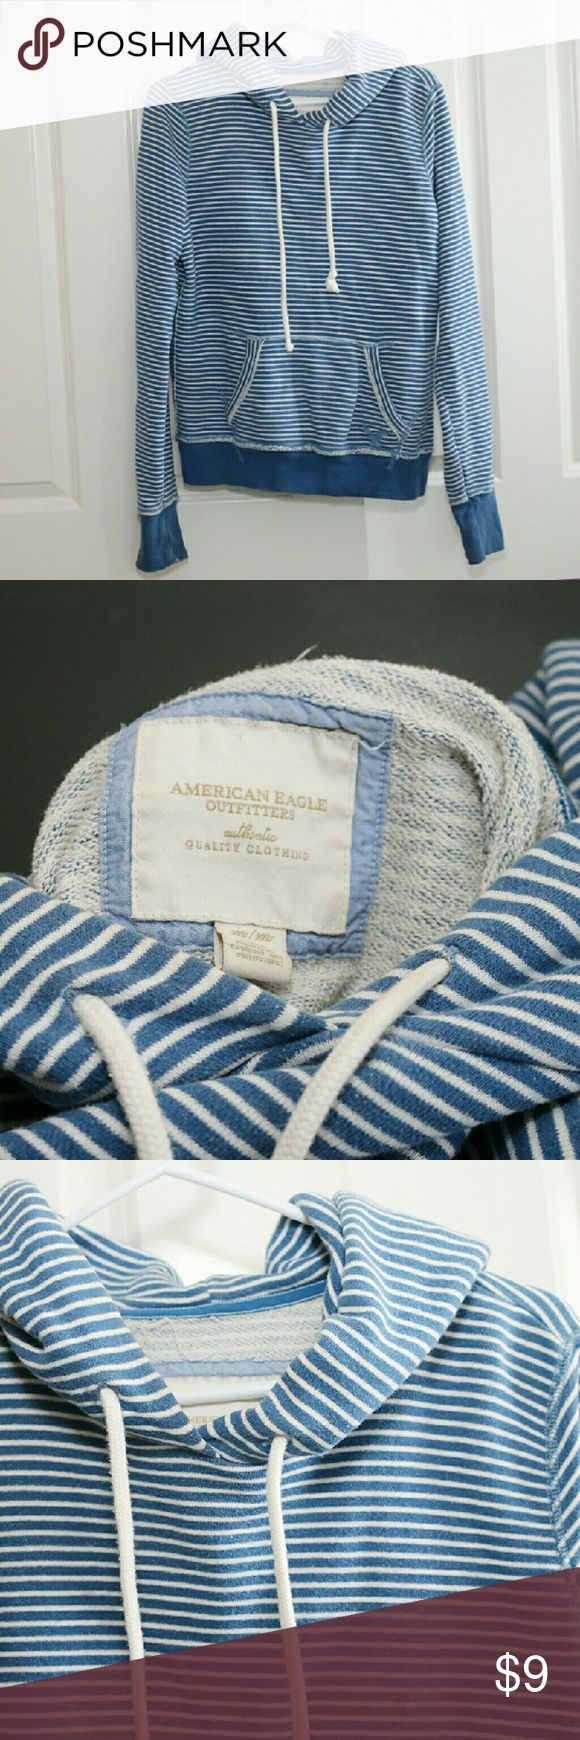 American Eagle Sweatshirt Blue Stripe Size Medium American Eagle Sweatshirt.  Blue stripes.  Size Medium.  Sweatshirt is overall in good condition.  There is a tiny hole in front pocket and some wear on the sleeves, one more than the other.  Both shown In pictures.  Price reflects wear. American Eagle Outfitters Tops Sweatshirts & Hoodies